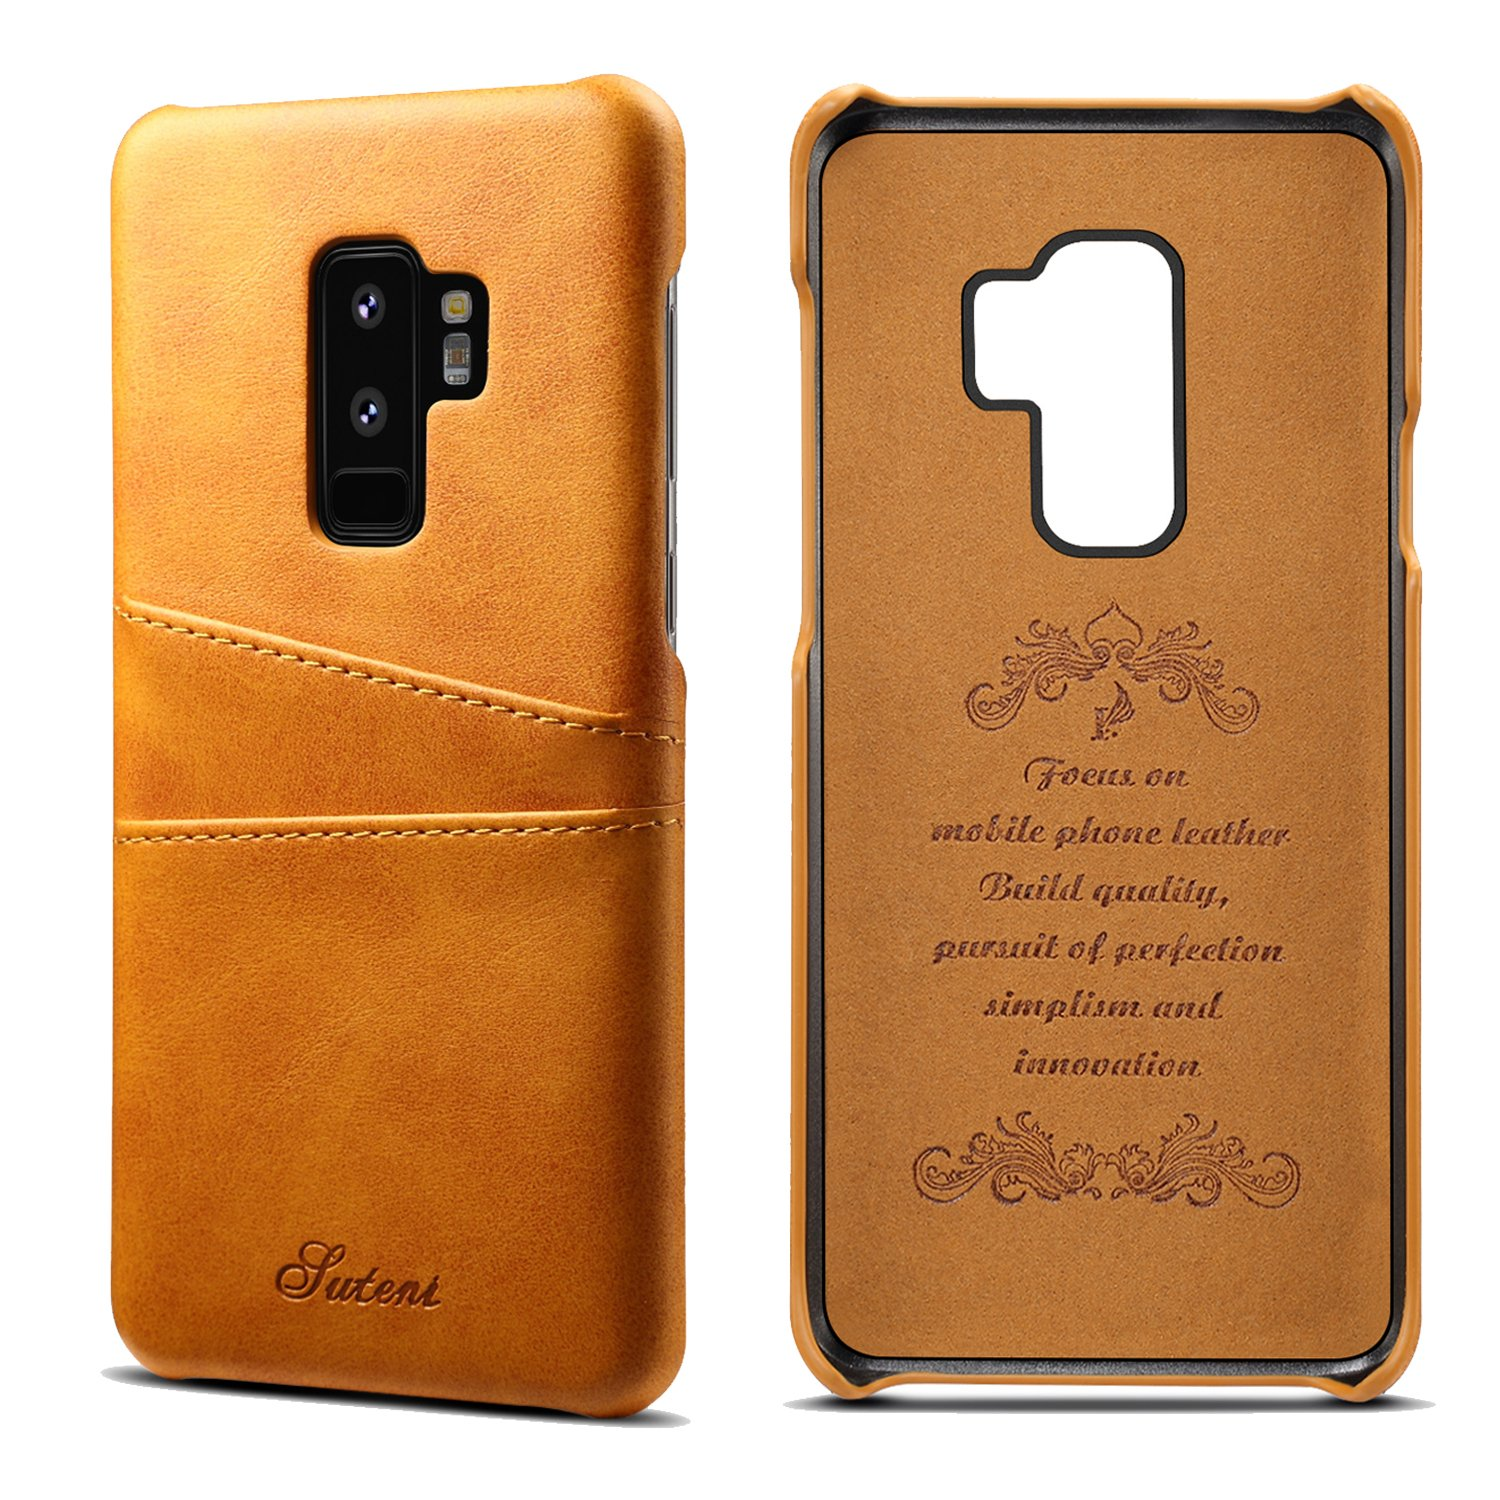 Galaxy S9 Plus Case, Synthetic Leather Wallet Case Slim Cover with 2 Card Slots S9P-XNCK-XR-BK